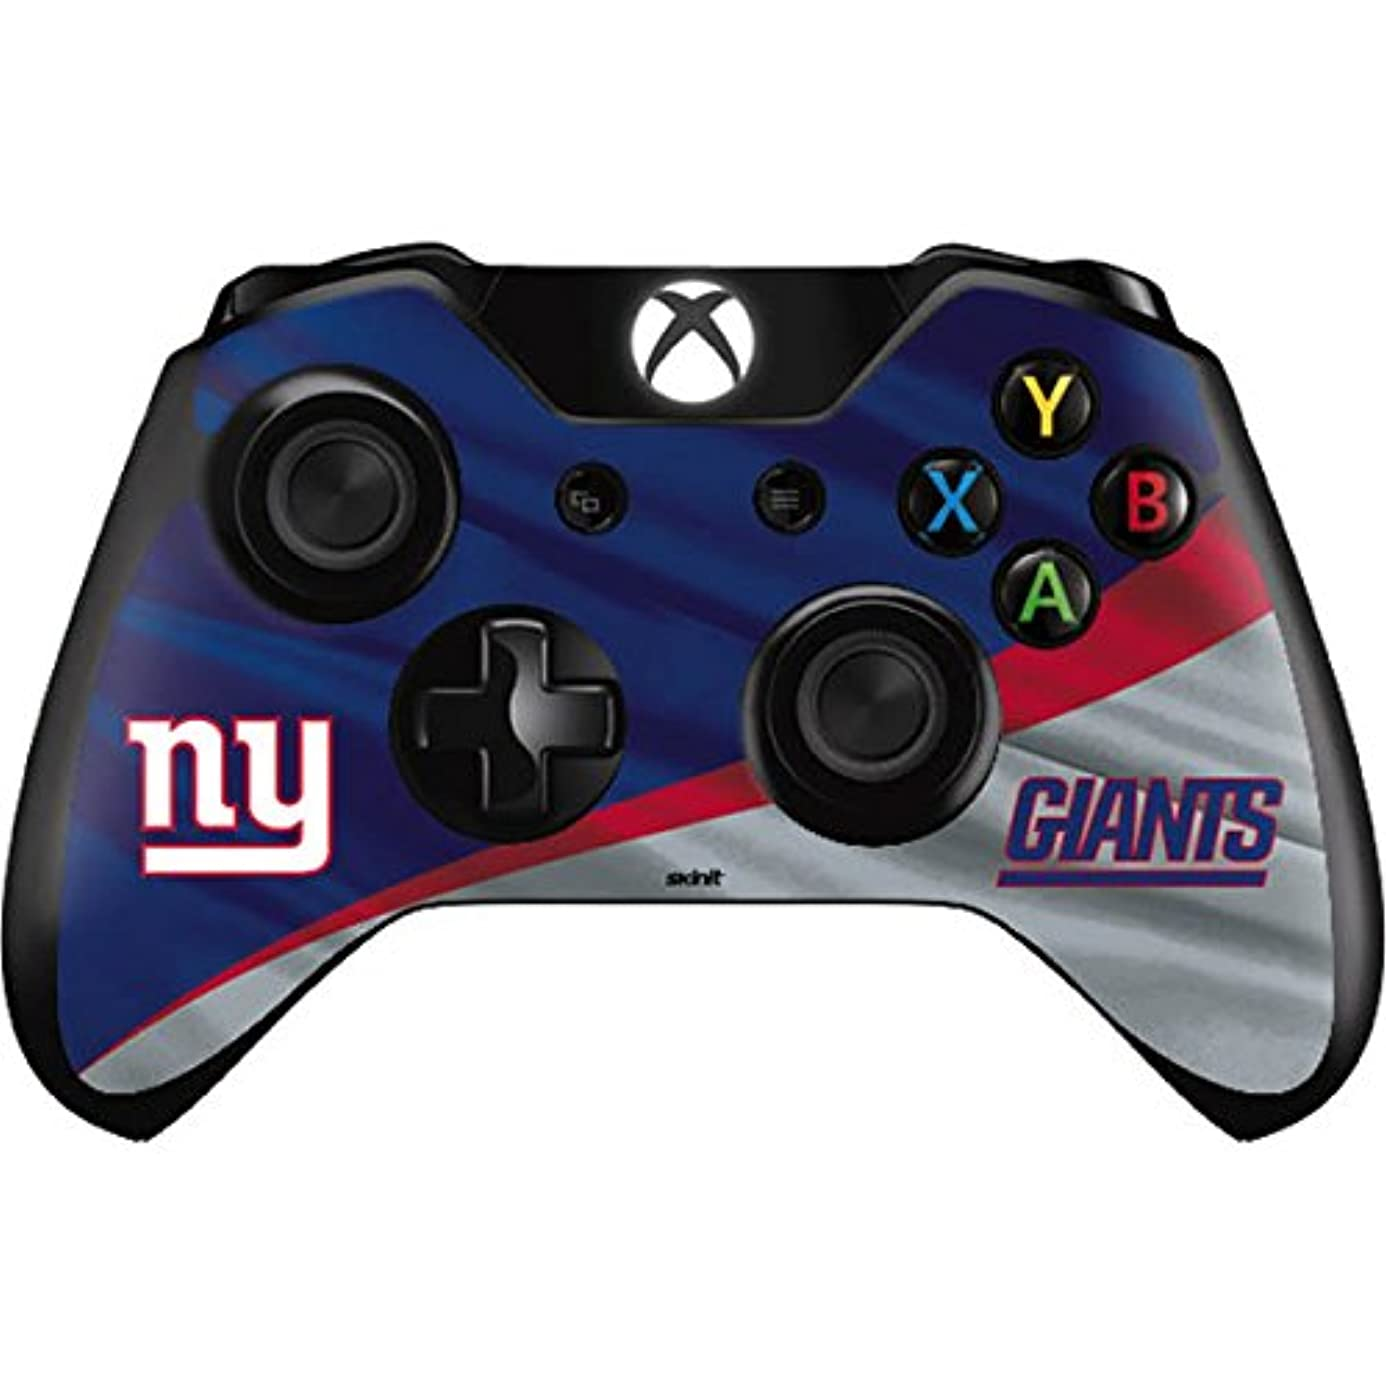 Skinit New York Giants Xbox One Controller Skin - Officially Licensed NFL Gaming Decal - Ultra Thin, Lightweight Vinyl Decal Protection